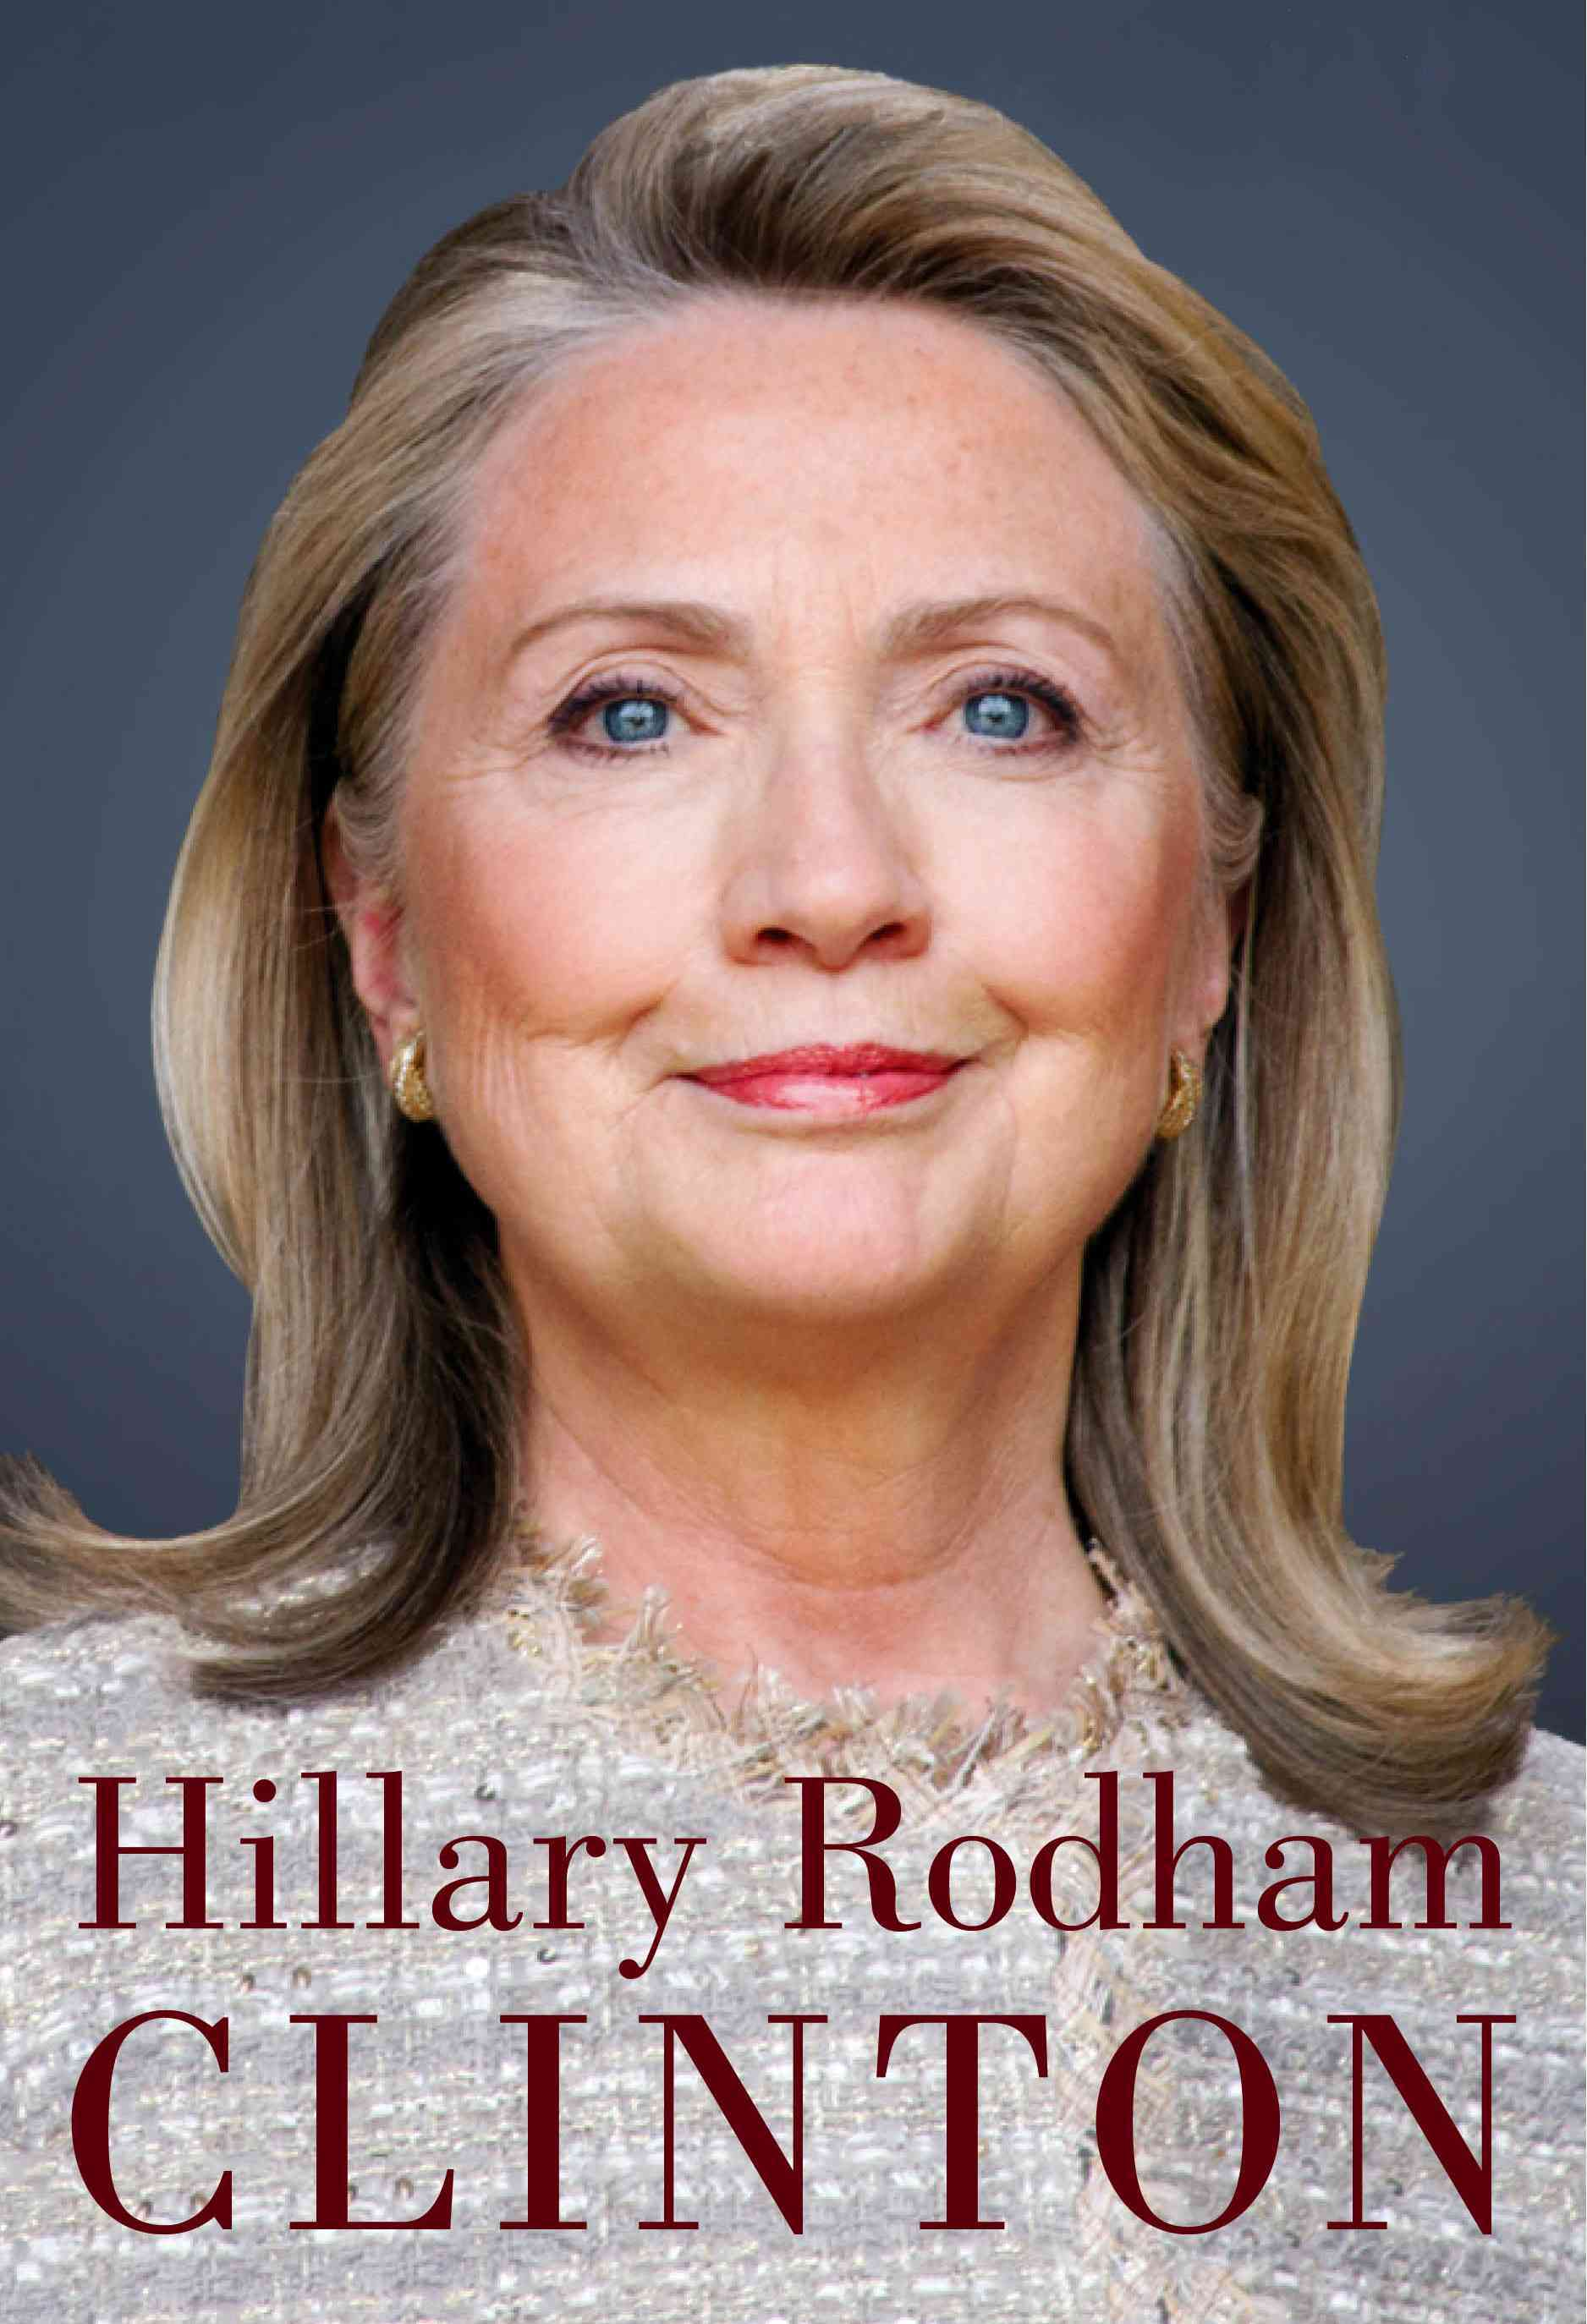 A New Memoir By Clinton, Hillary Rodham